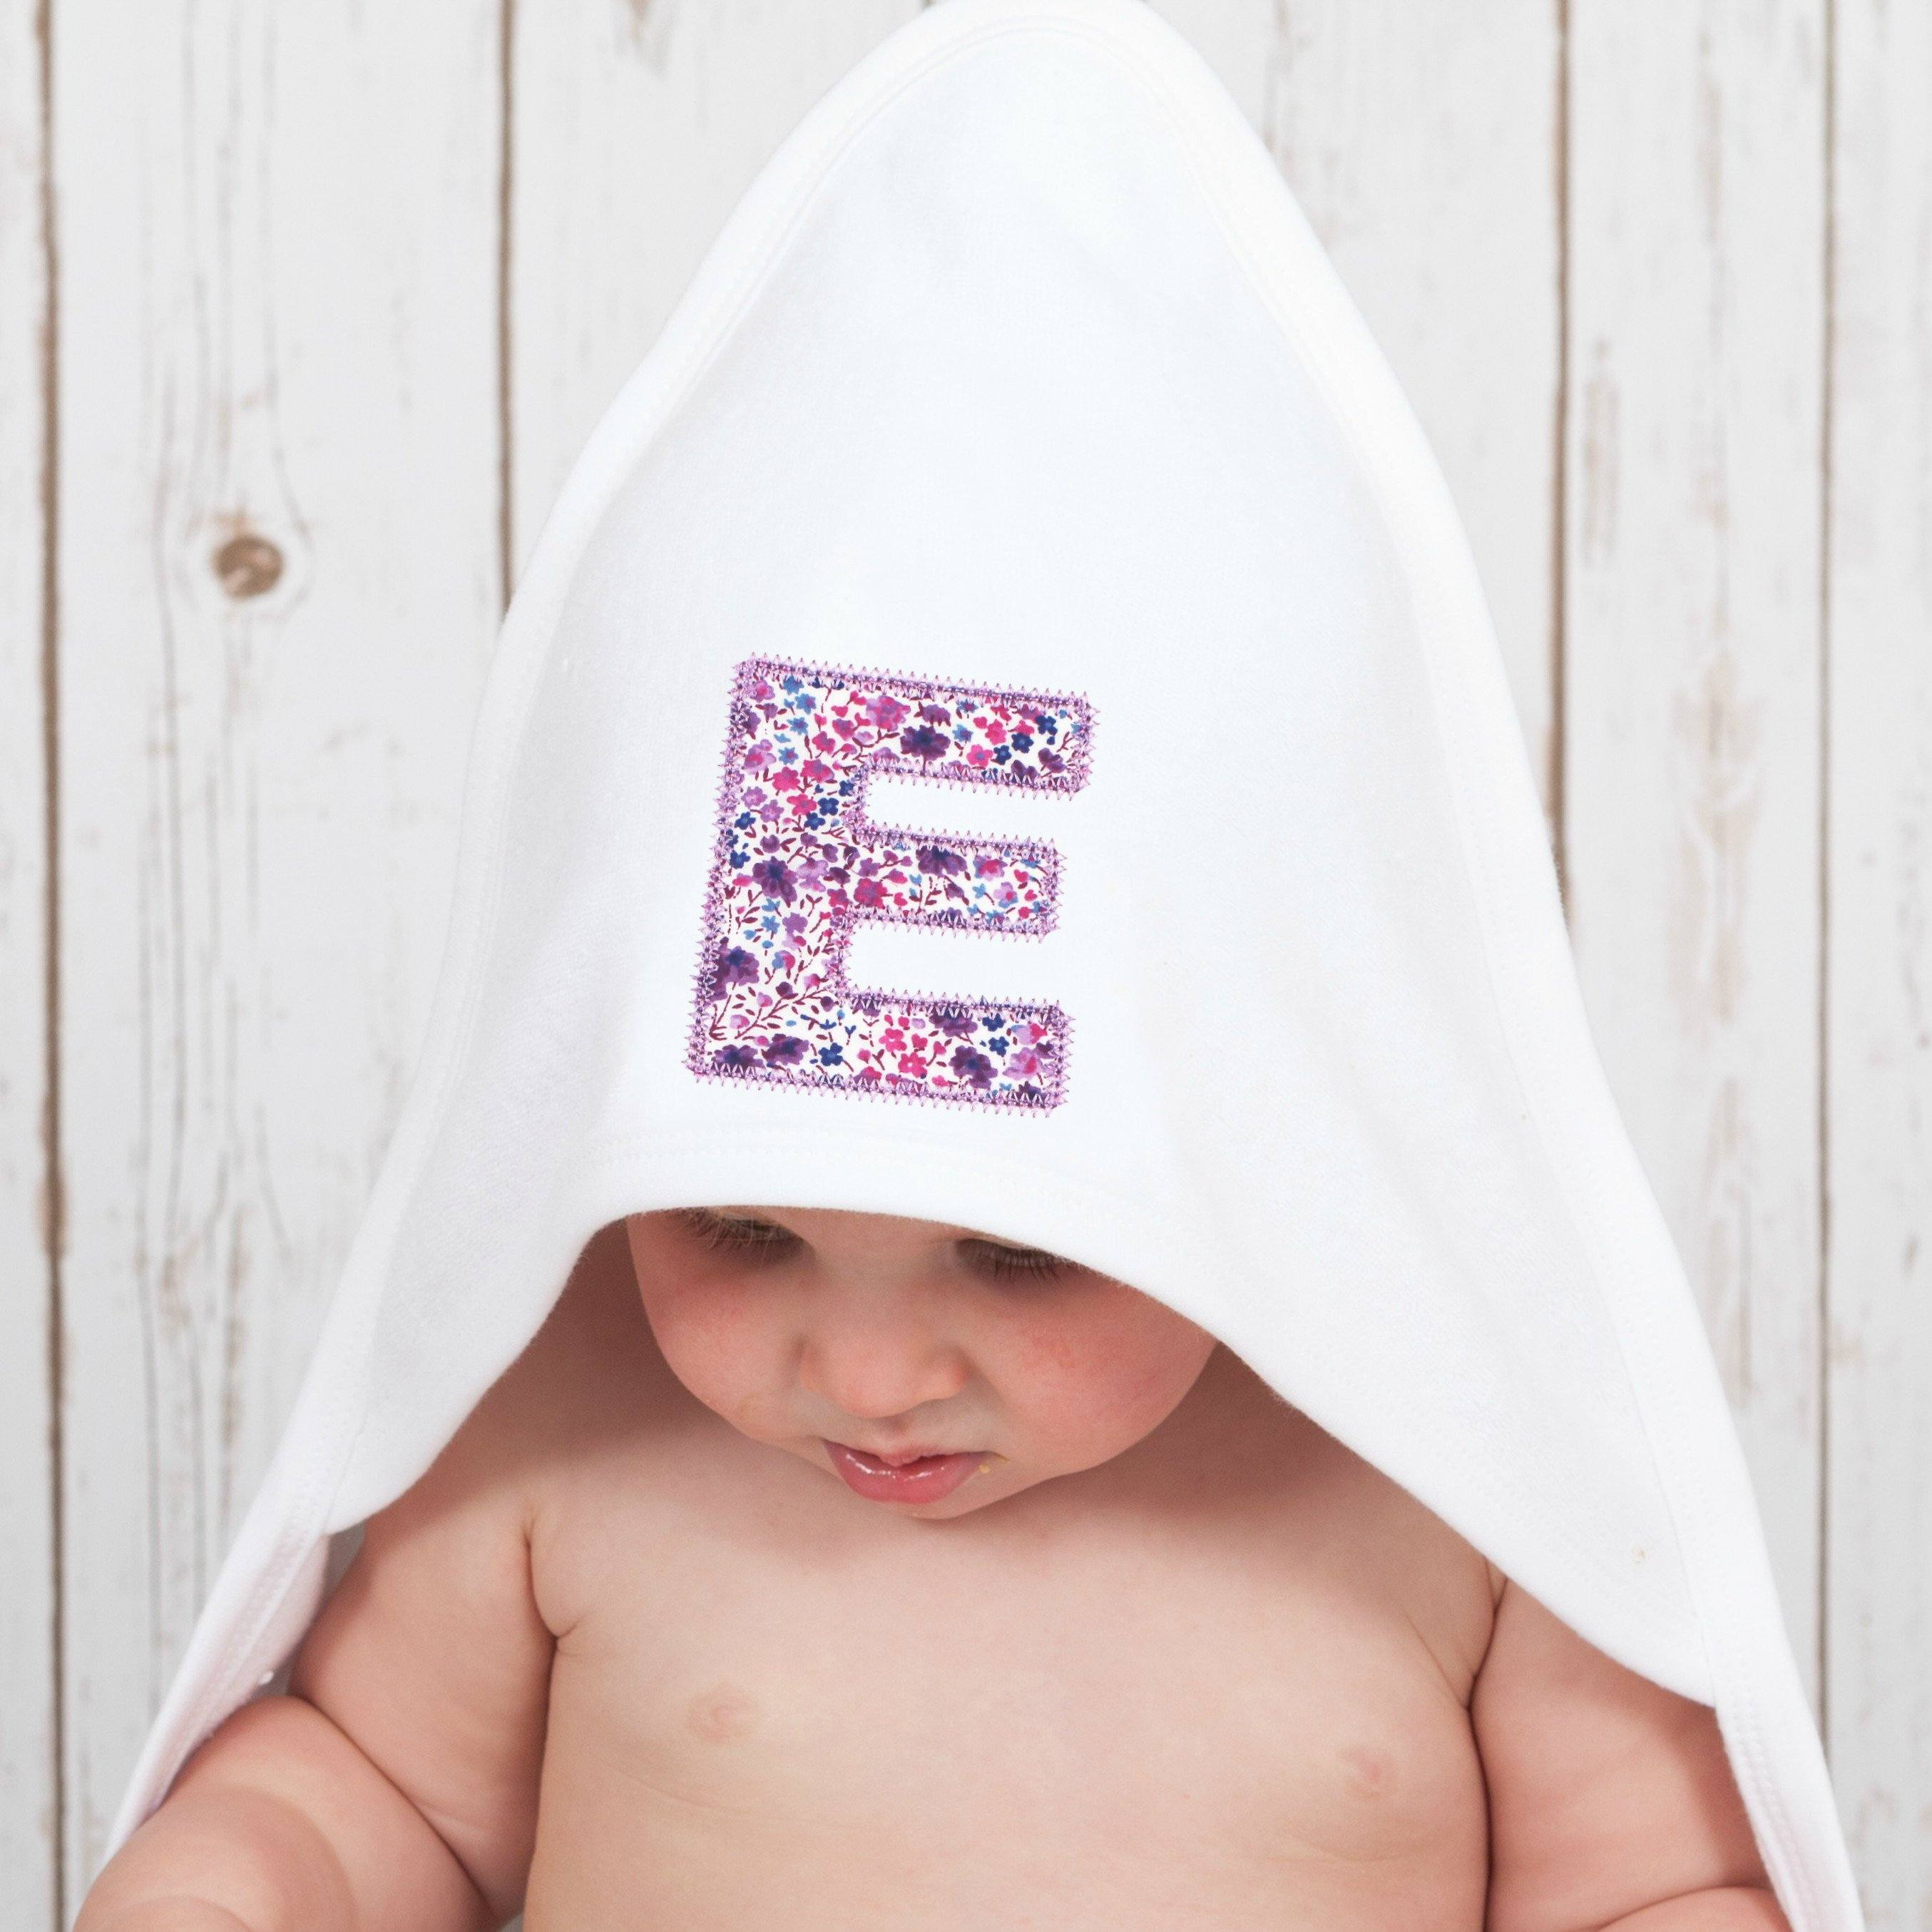 Personalised baby towel hooded baby towel with liberty bunny liberty hooded baby towelpersonalised baby gifts betty bramble negle Choice Image